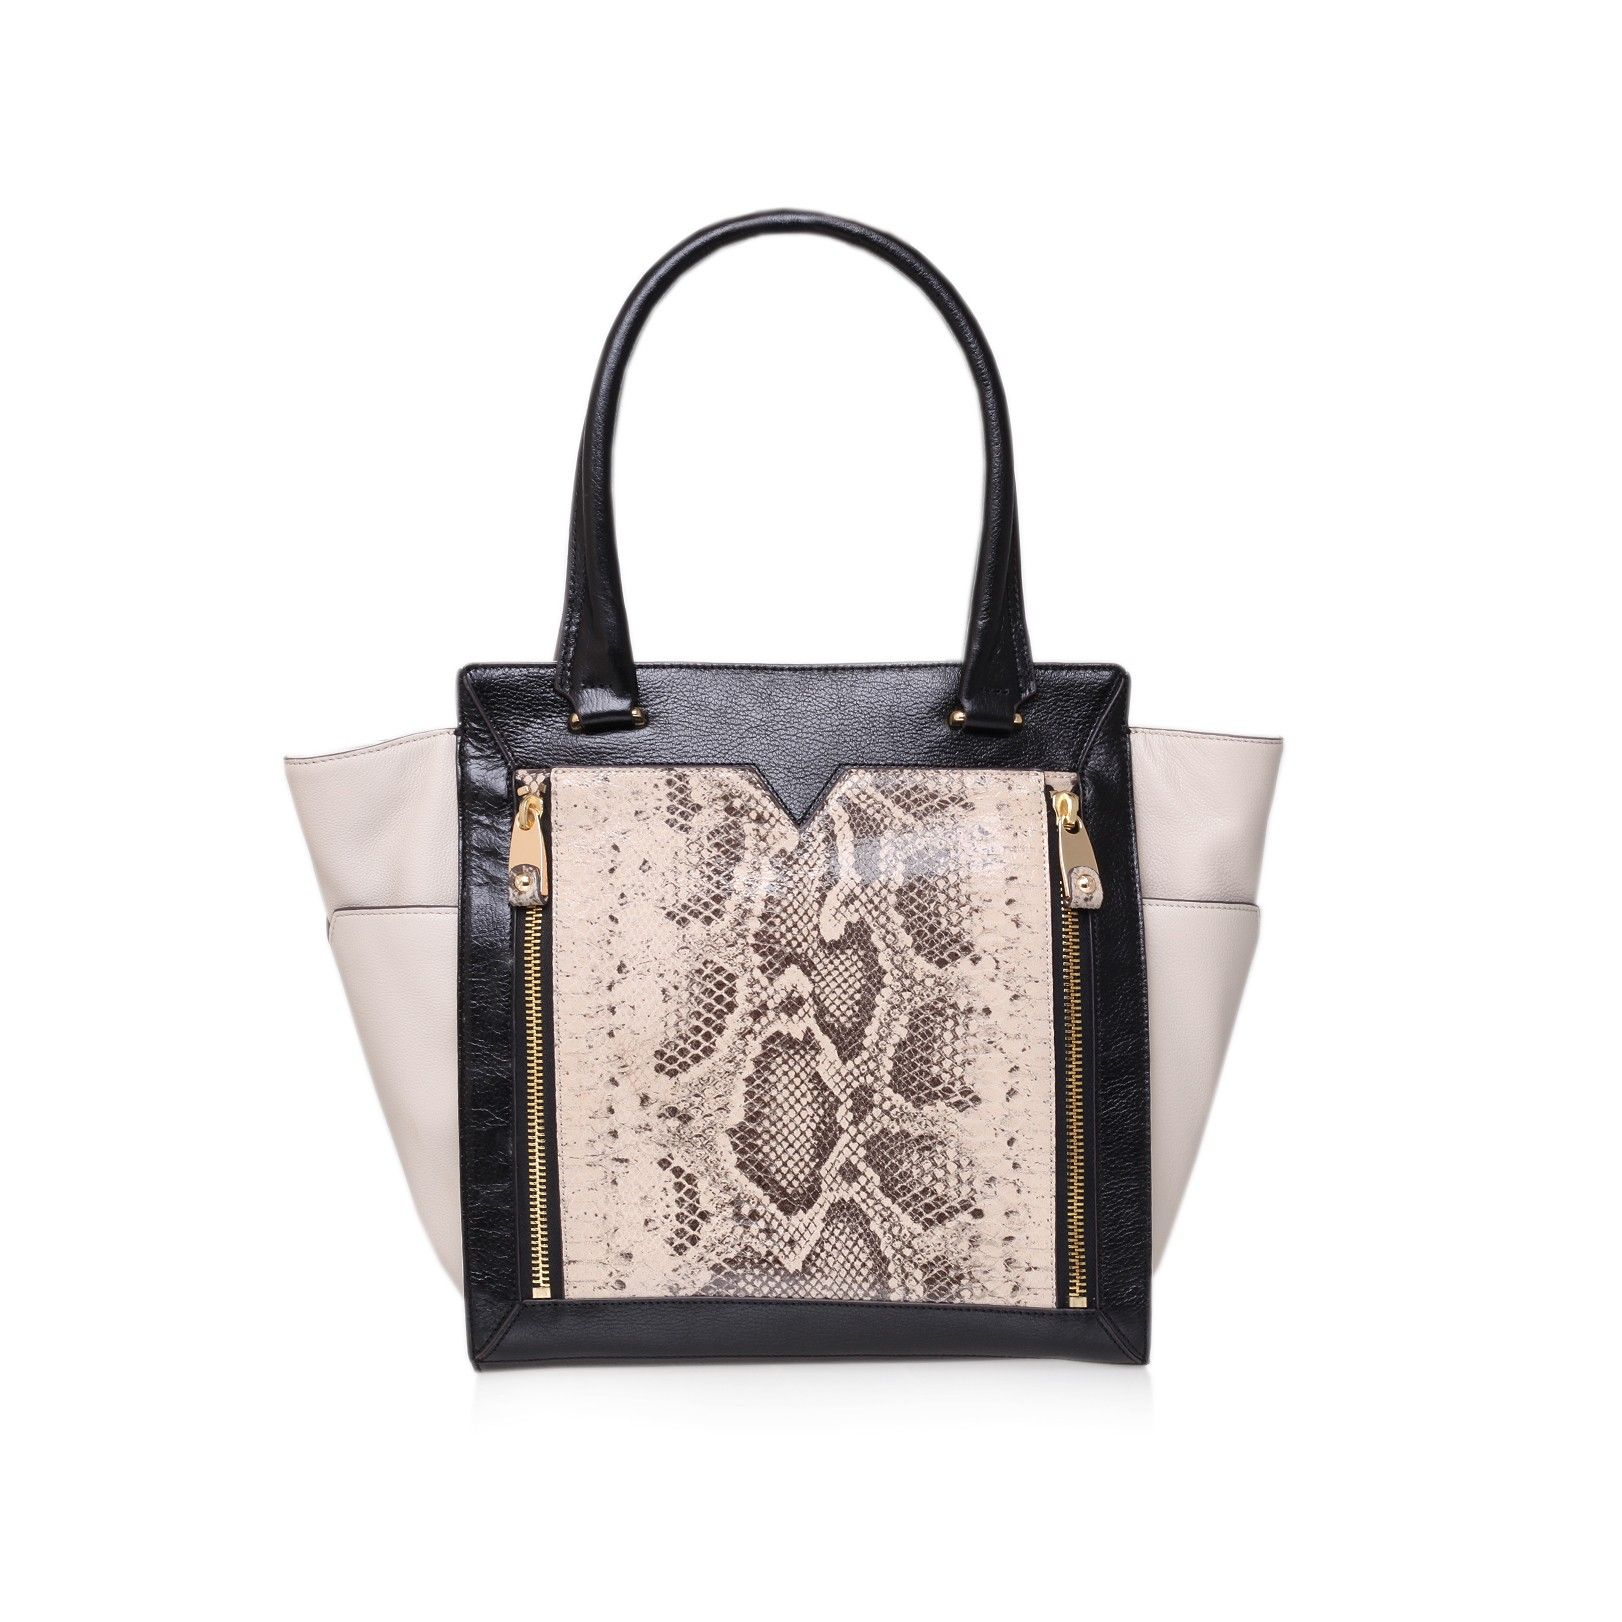 "My inspiration. The Vince Camuto ""Tara Tote""."